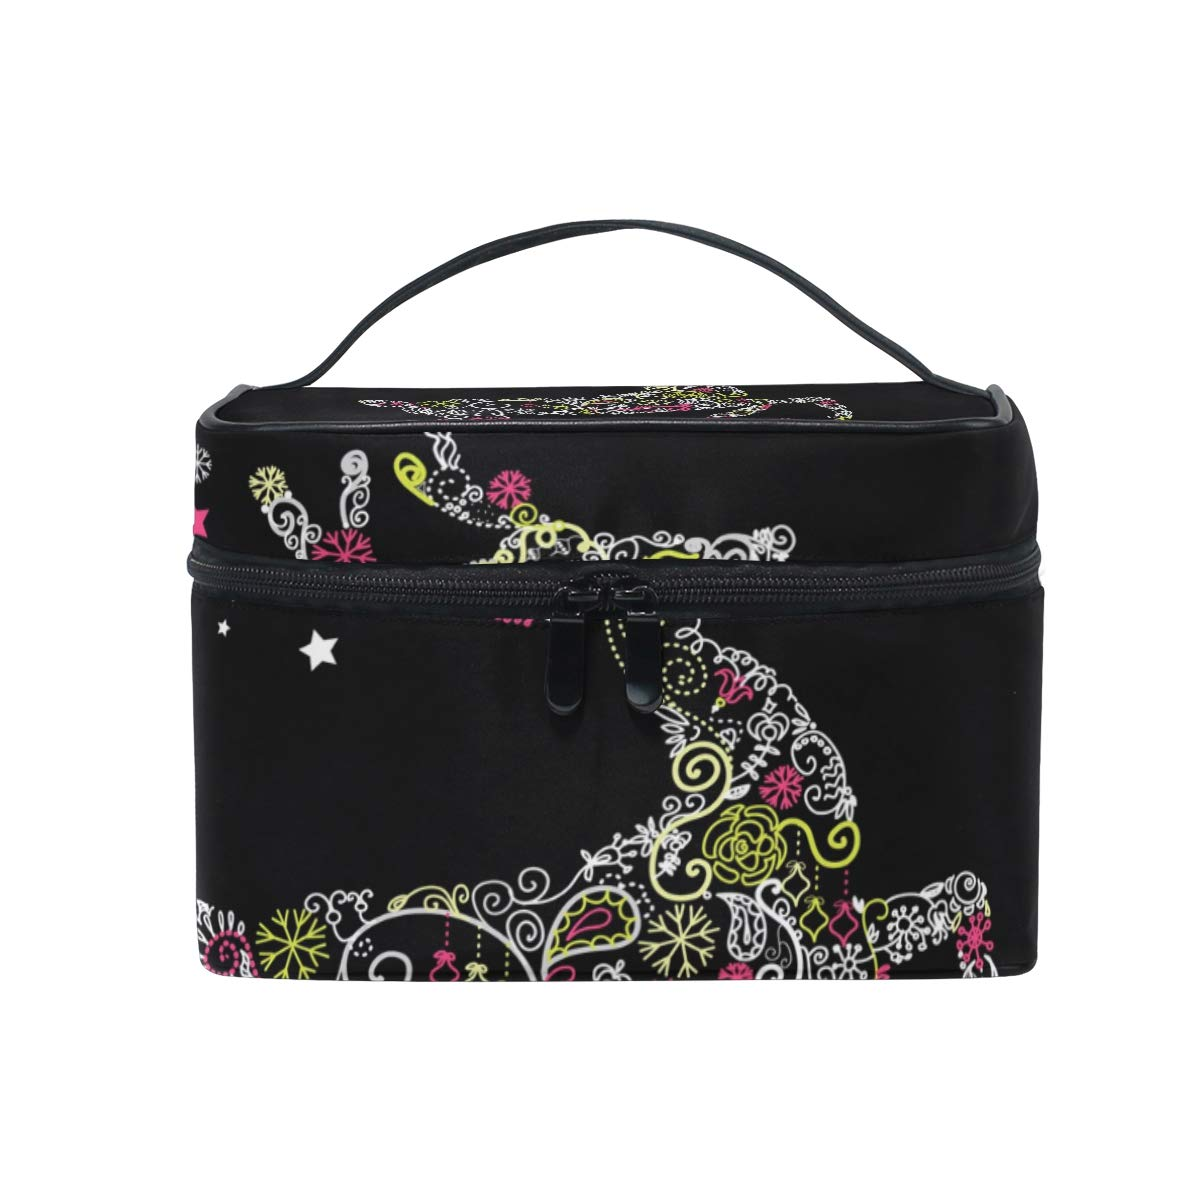 Travel Makeup Case Cosmetic Bag for Girl Women, Christmas Card Large Capacity and Adjustable Makeup Bags Travel Waterproof Toiletry Bag Accessories Organizer